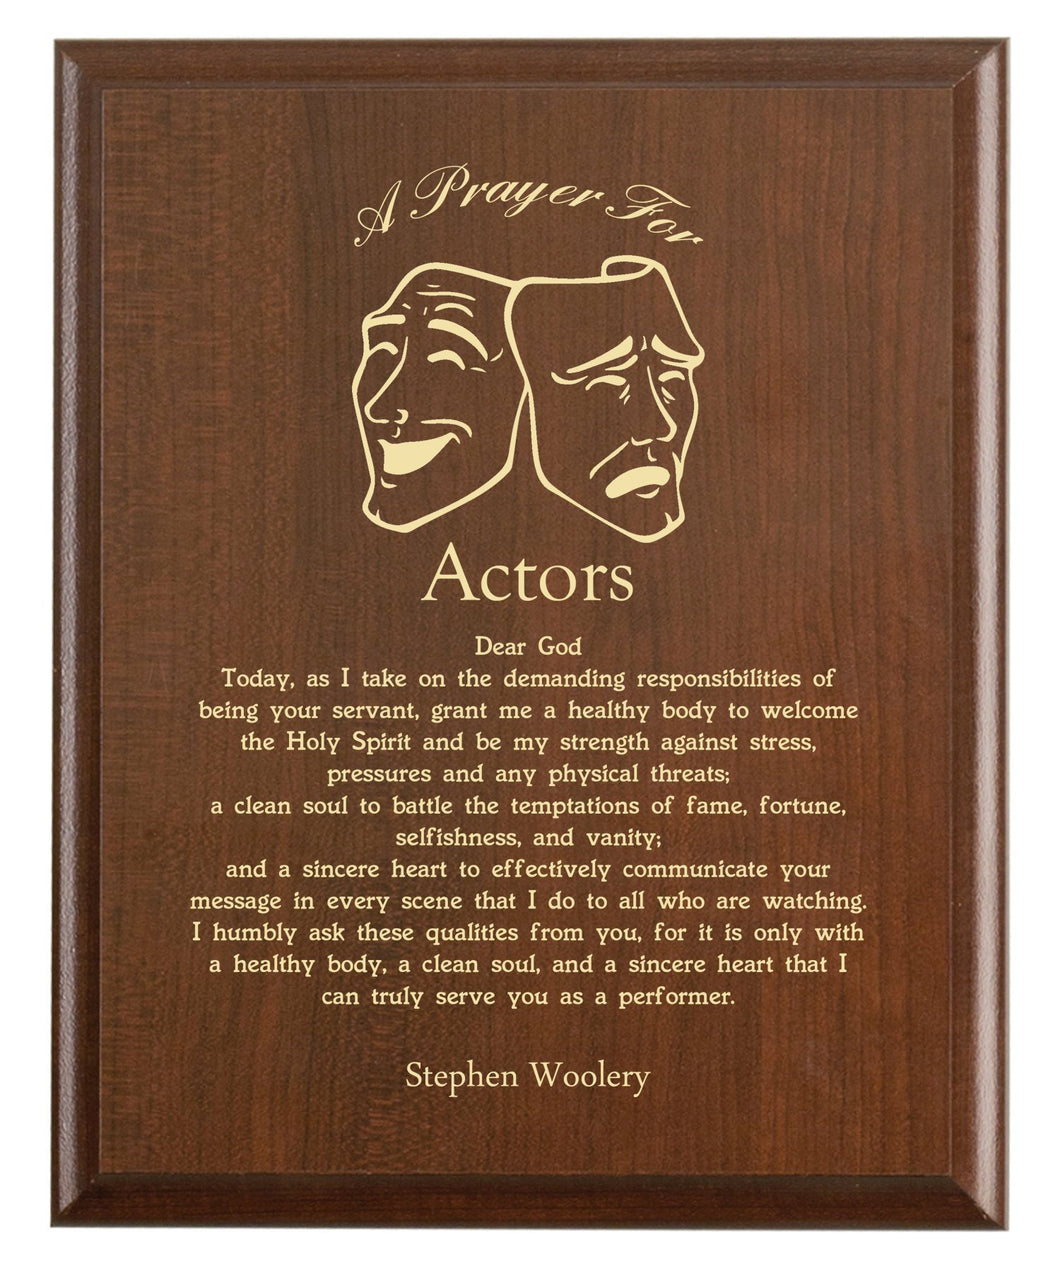 Christian prayer for an actor with industry logo and free personalization. Cherry finish with laser engraved text.